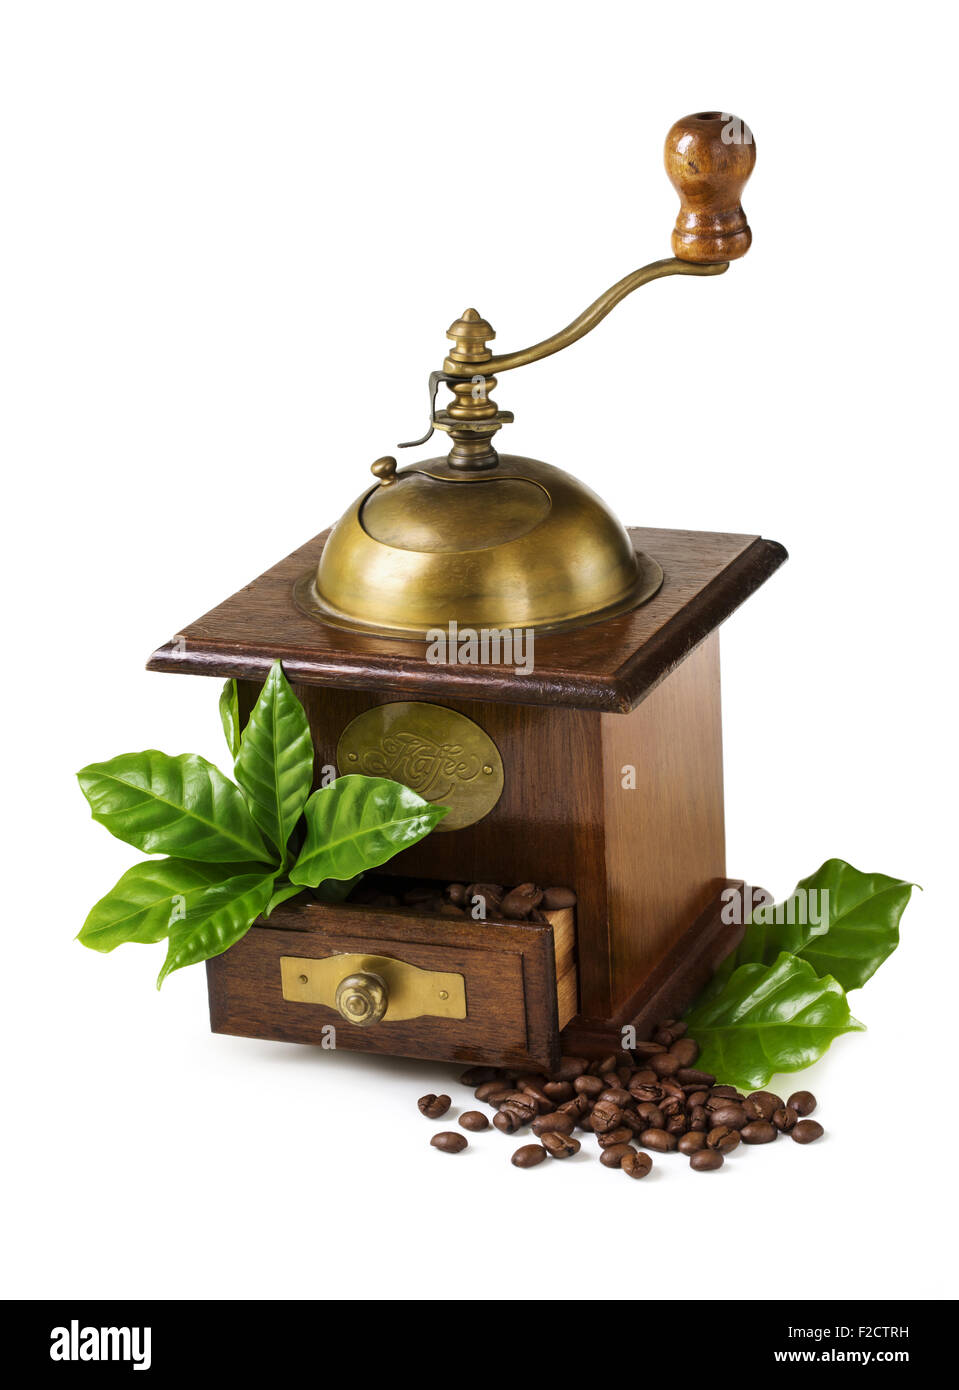 Old coffee mill with beans and leaves isolated on a white background - Stock Image